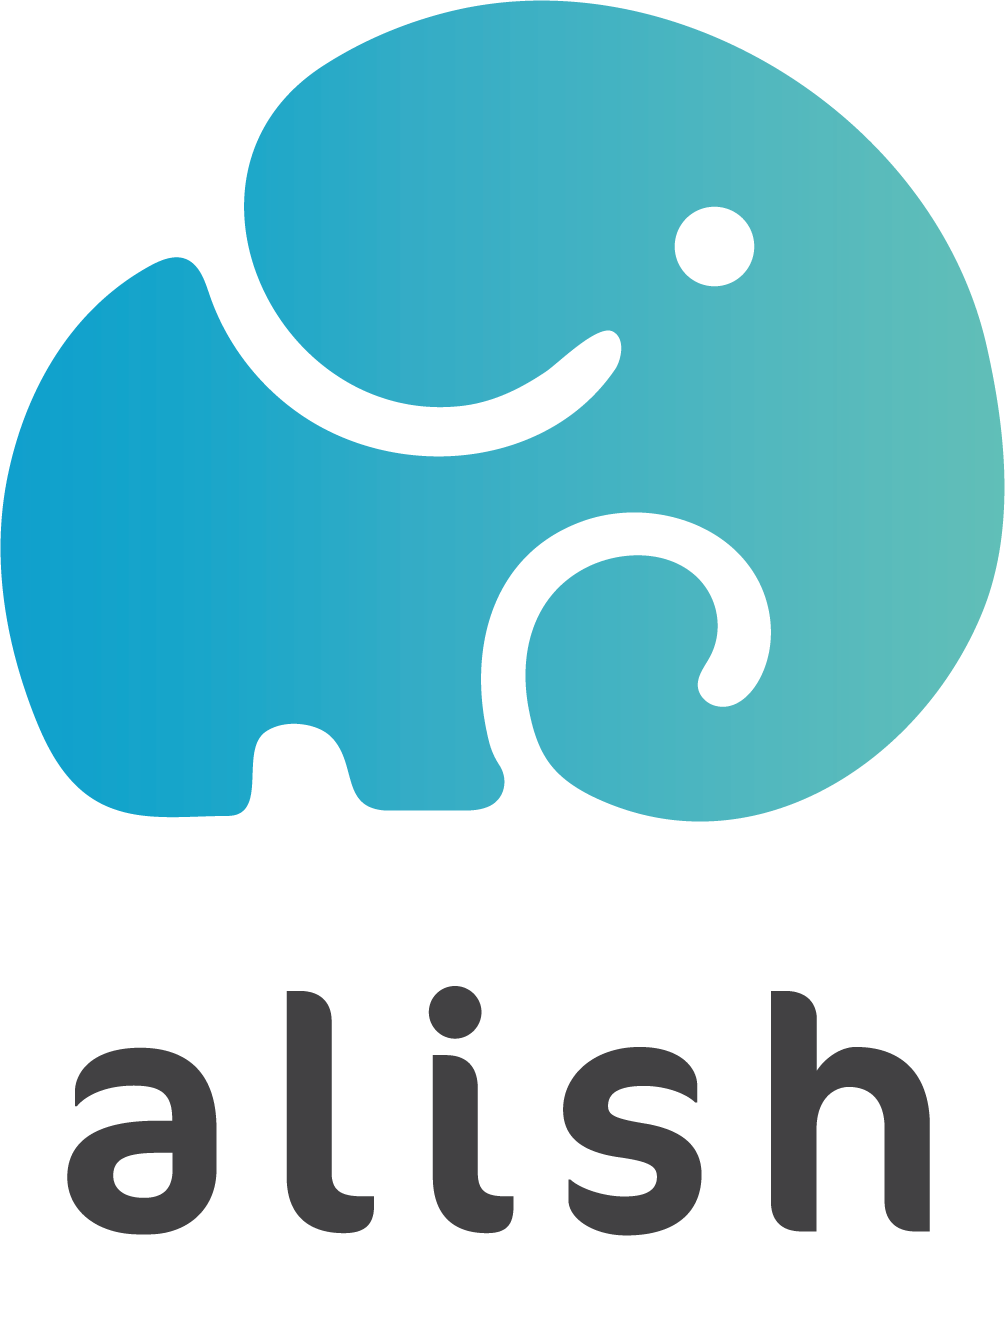 Alish Elephant Organik Body (1-9 Ay Arası)